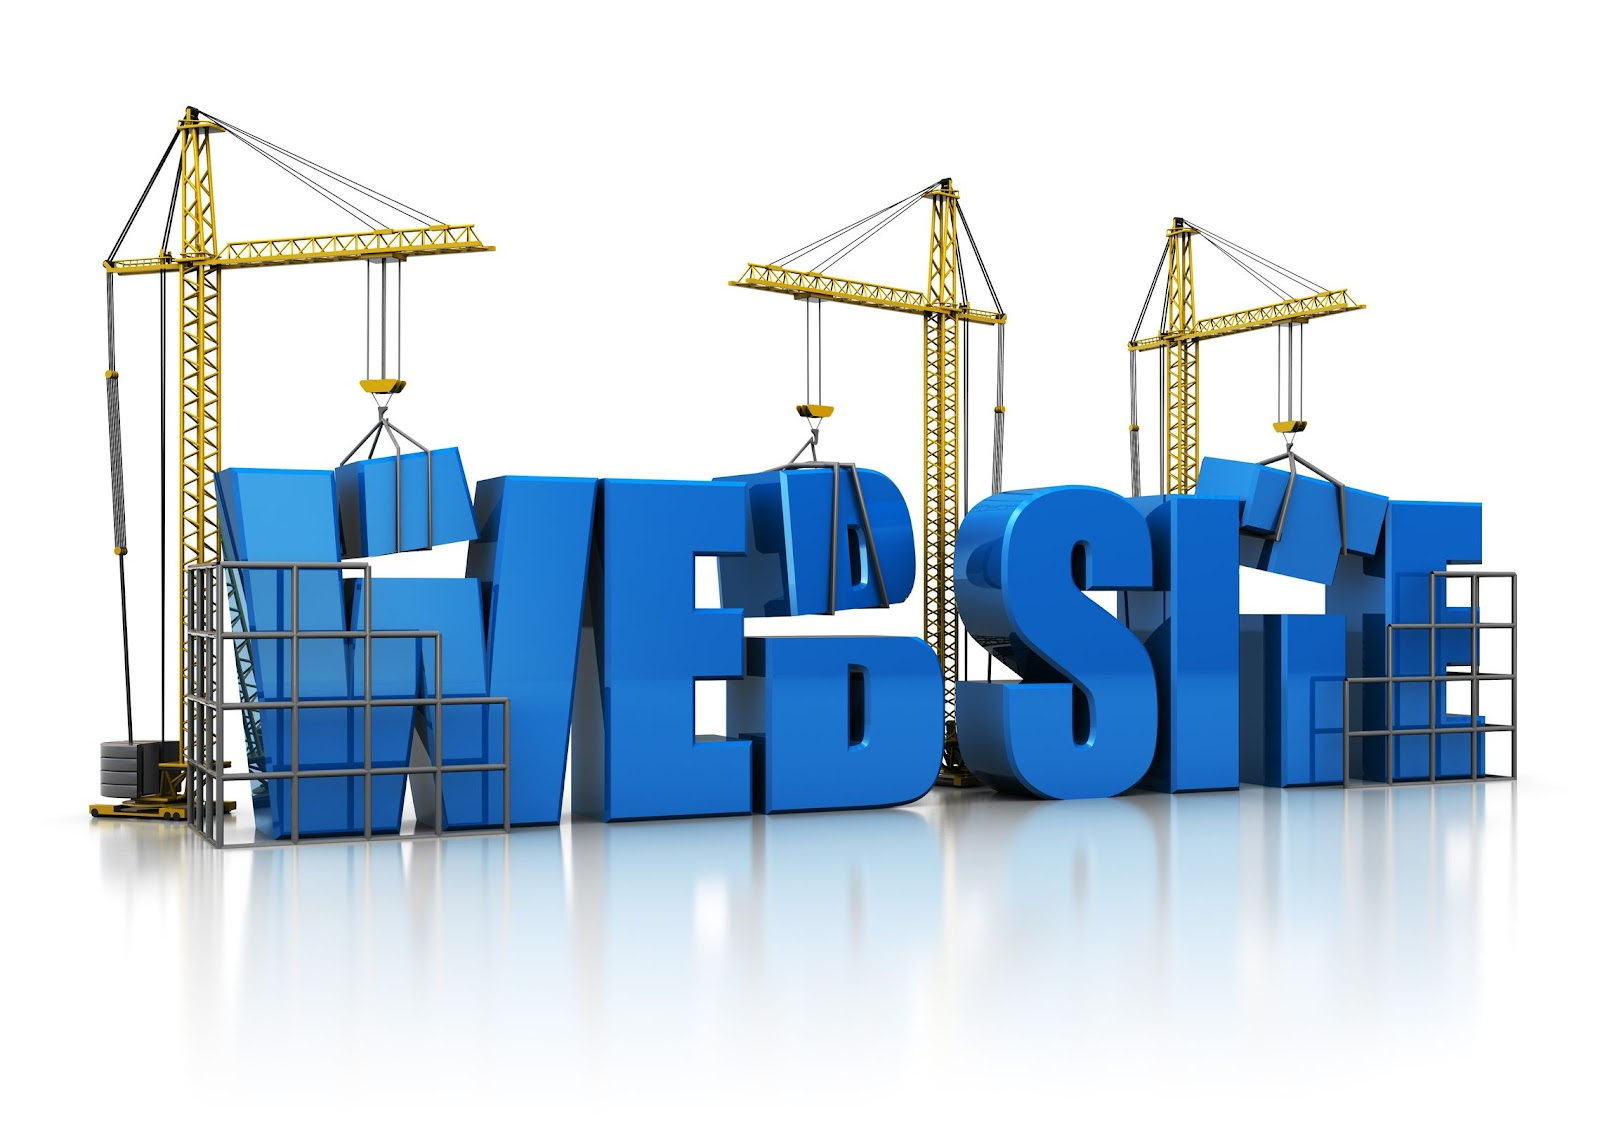 word website being constructed with construction machinery